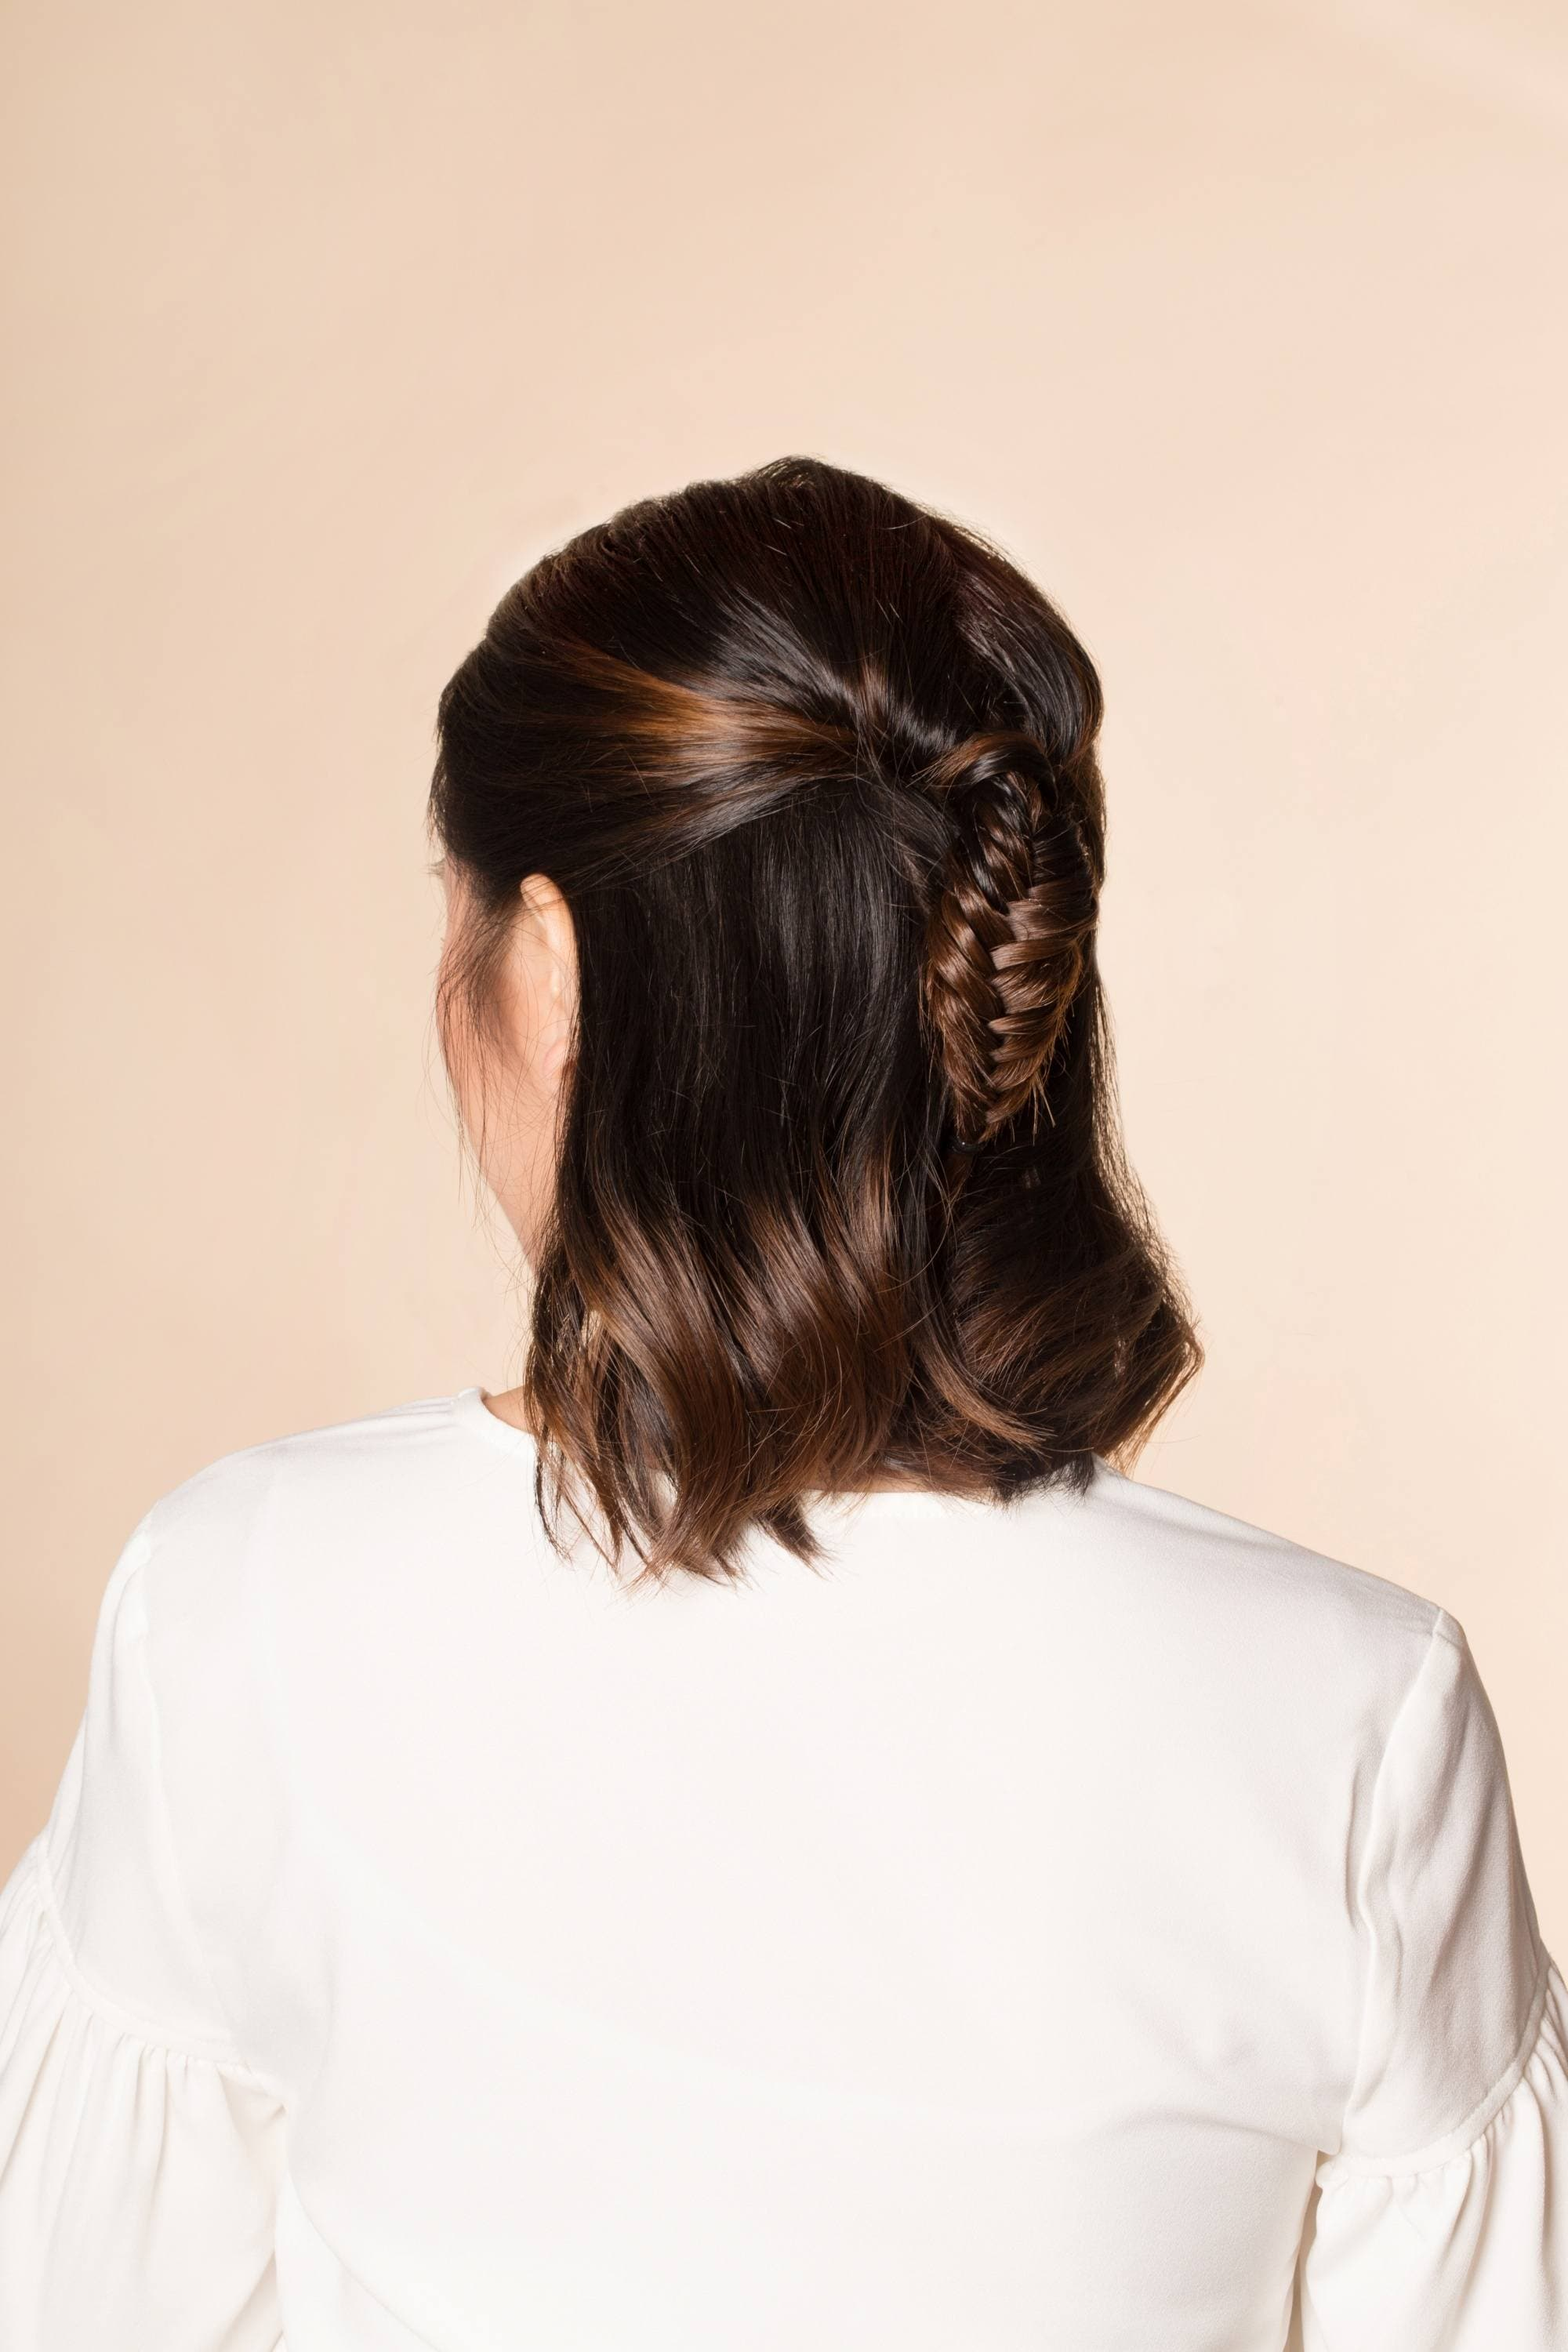 Back shot of an Asian woman with short hair in a half up fishtail braid hairstyle